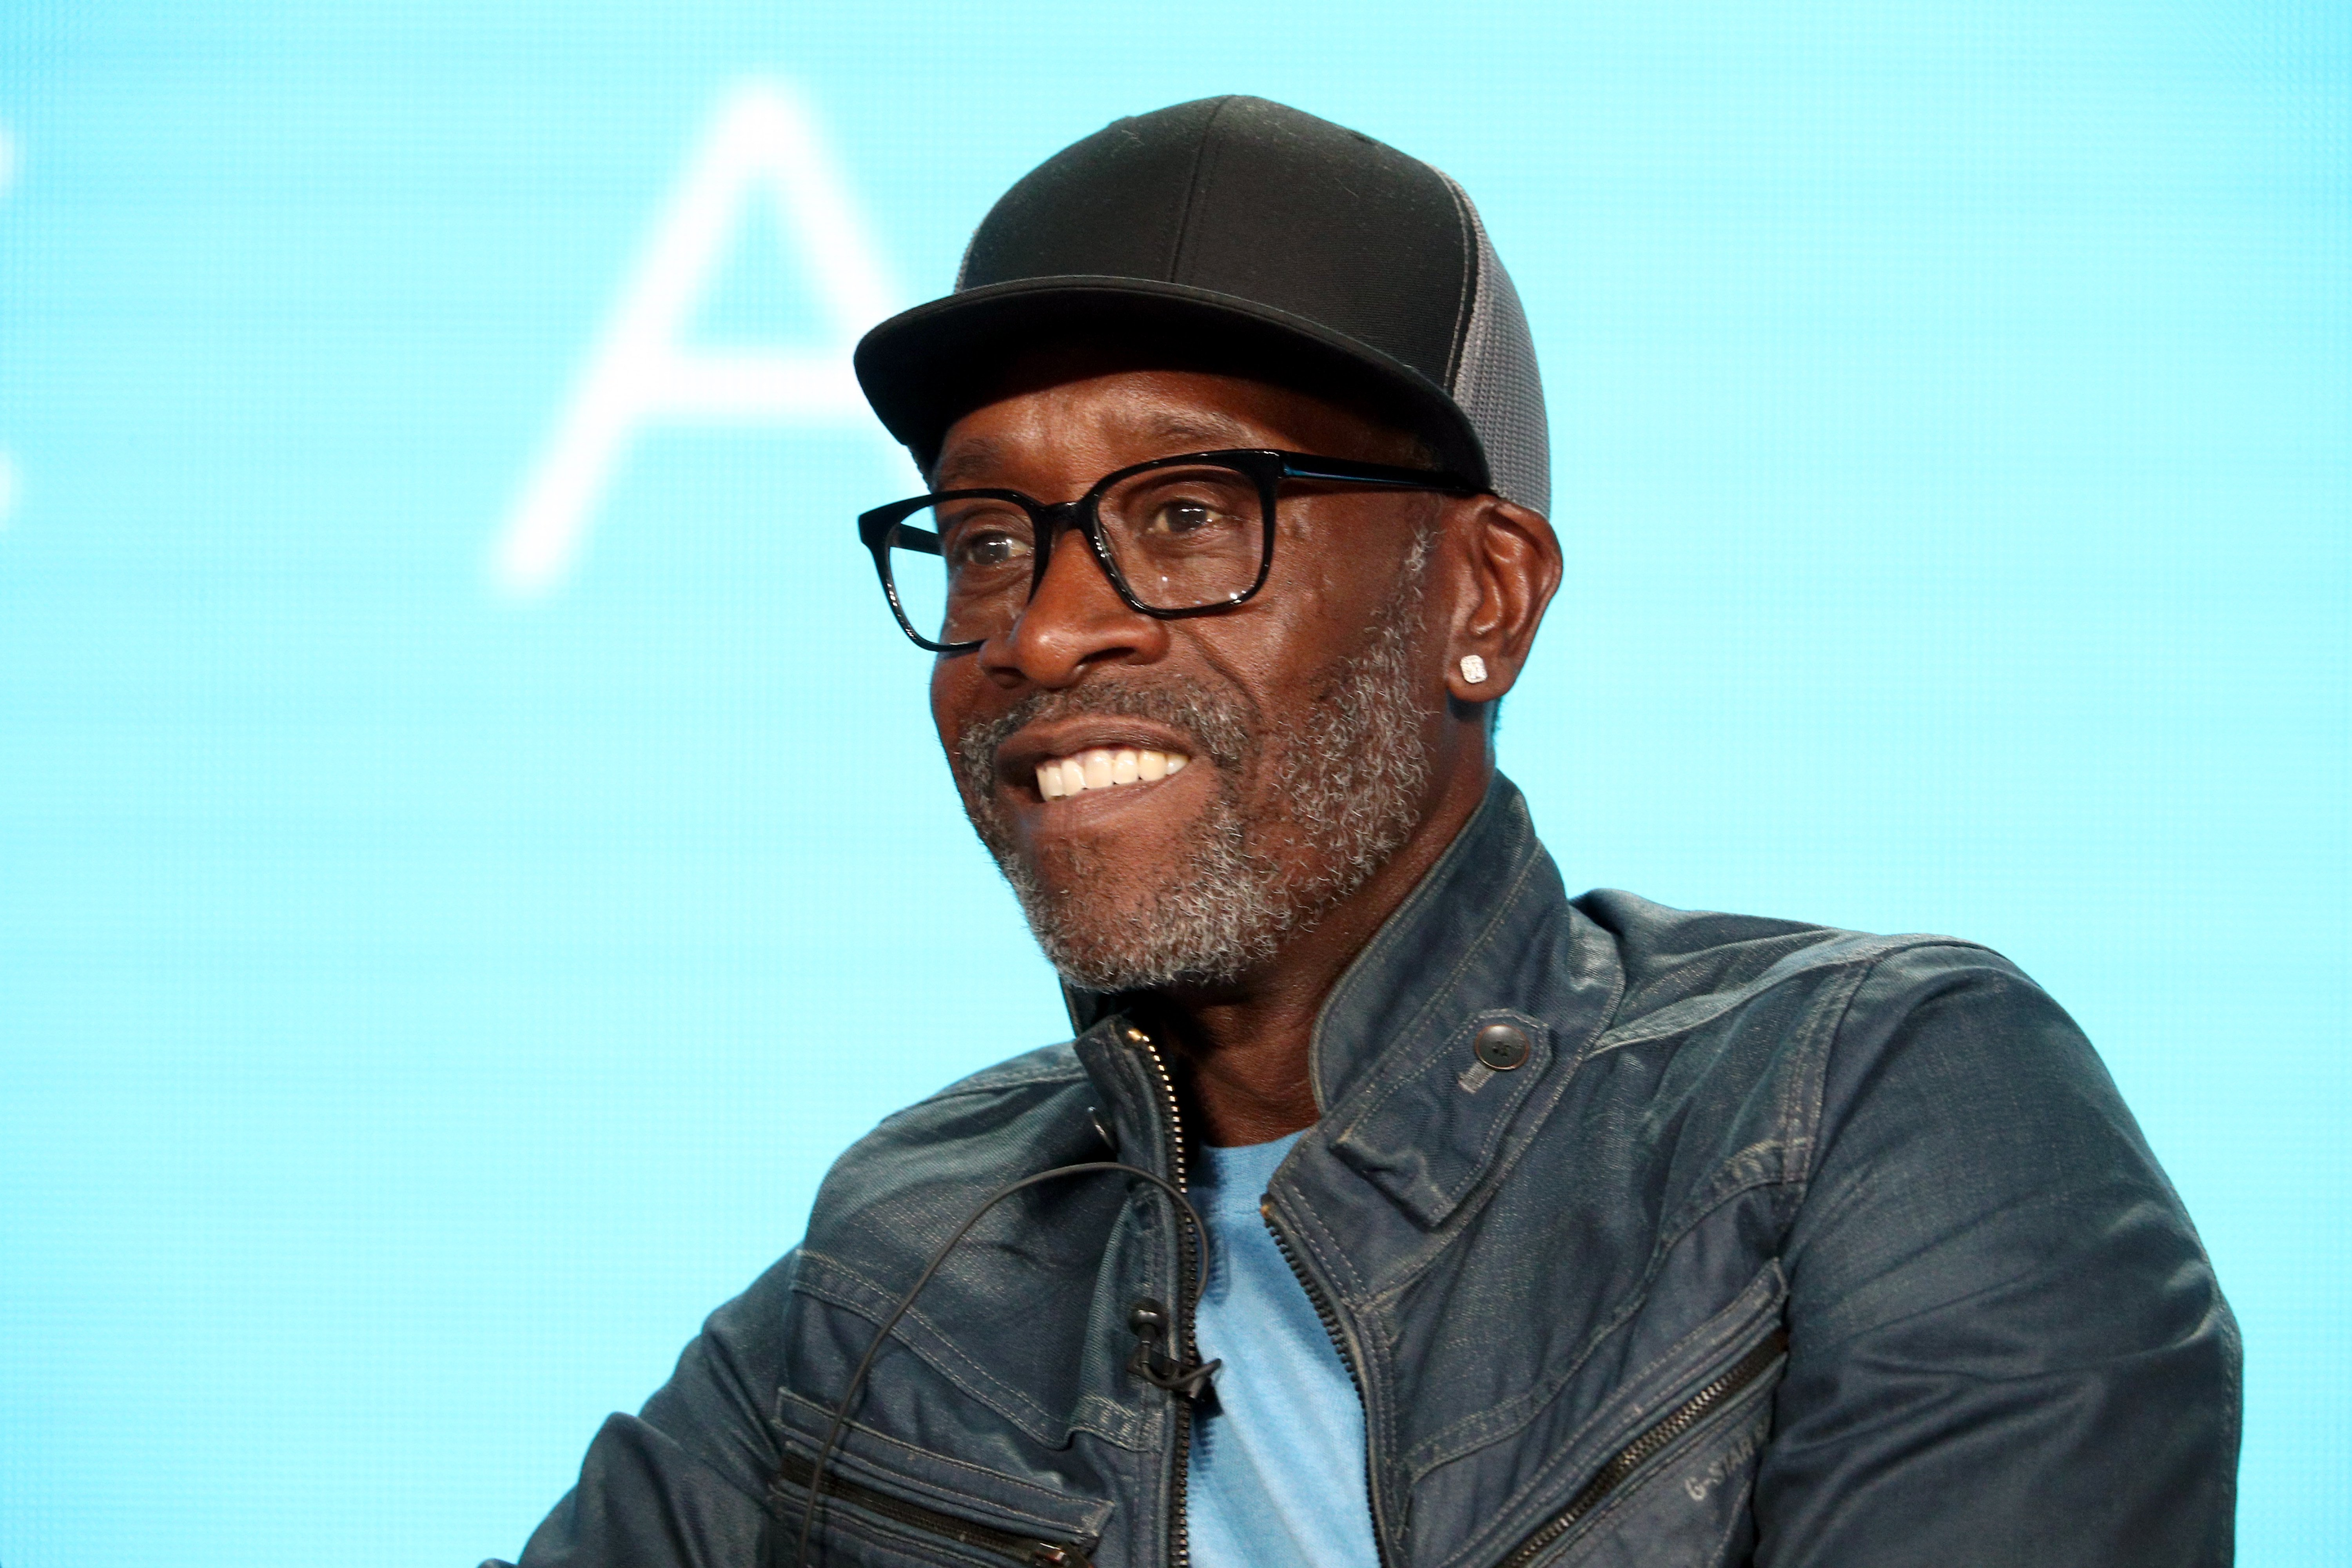 Don Cheadle during the 2019 Winter Television Critics Association Press Tour | Photo: Getty Images